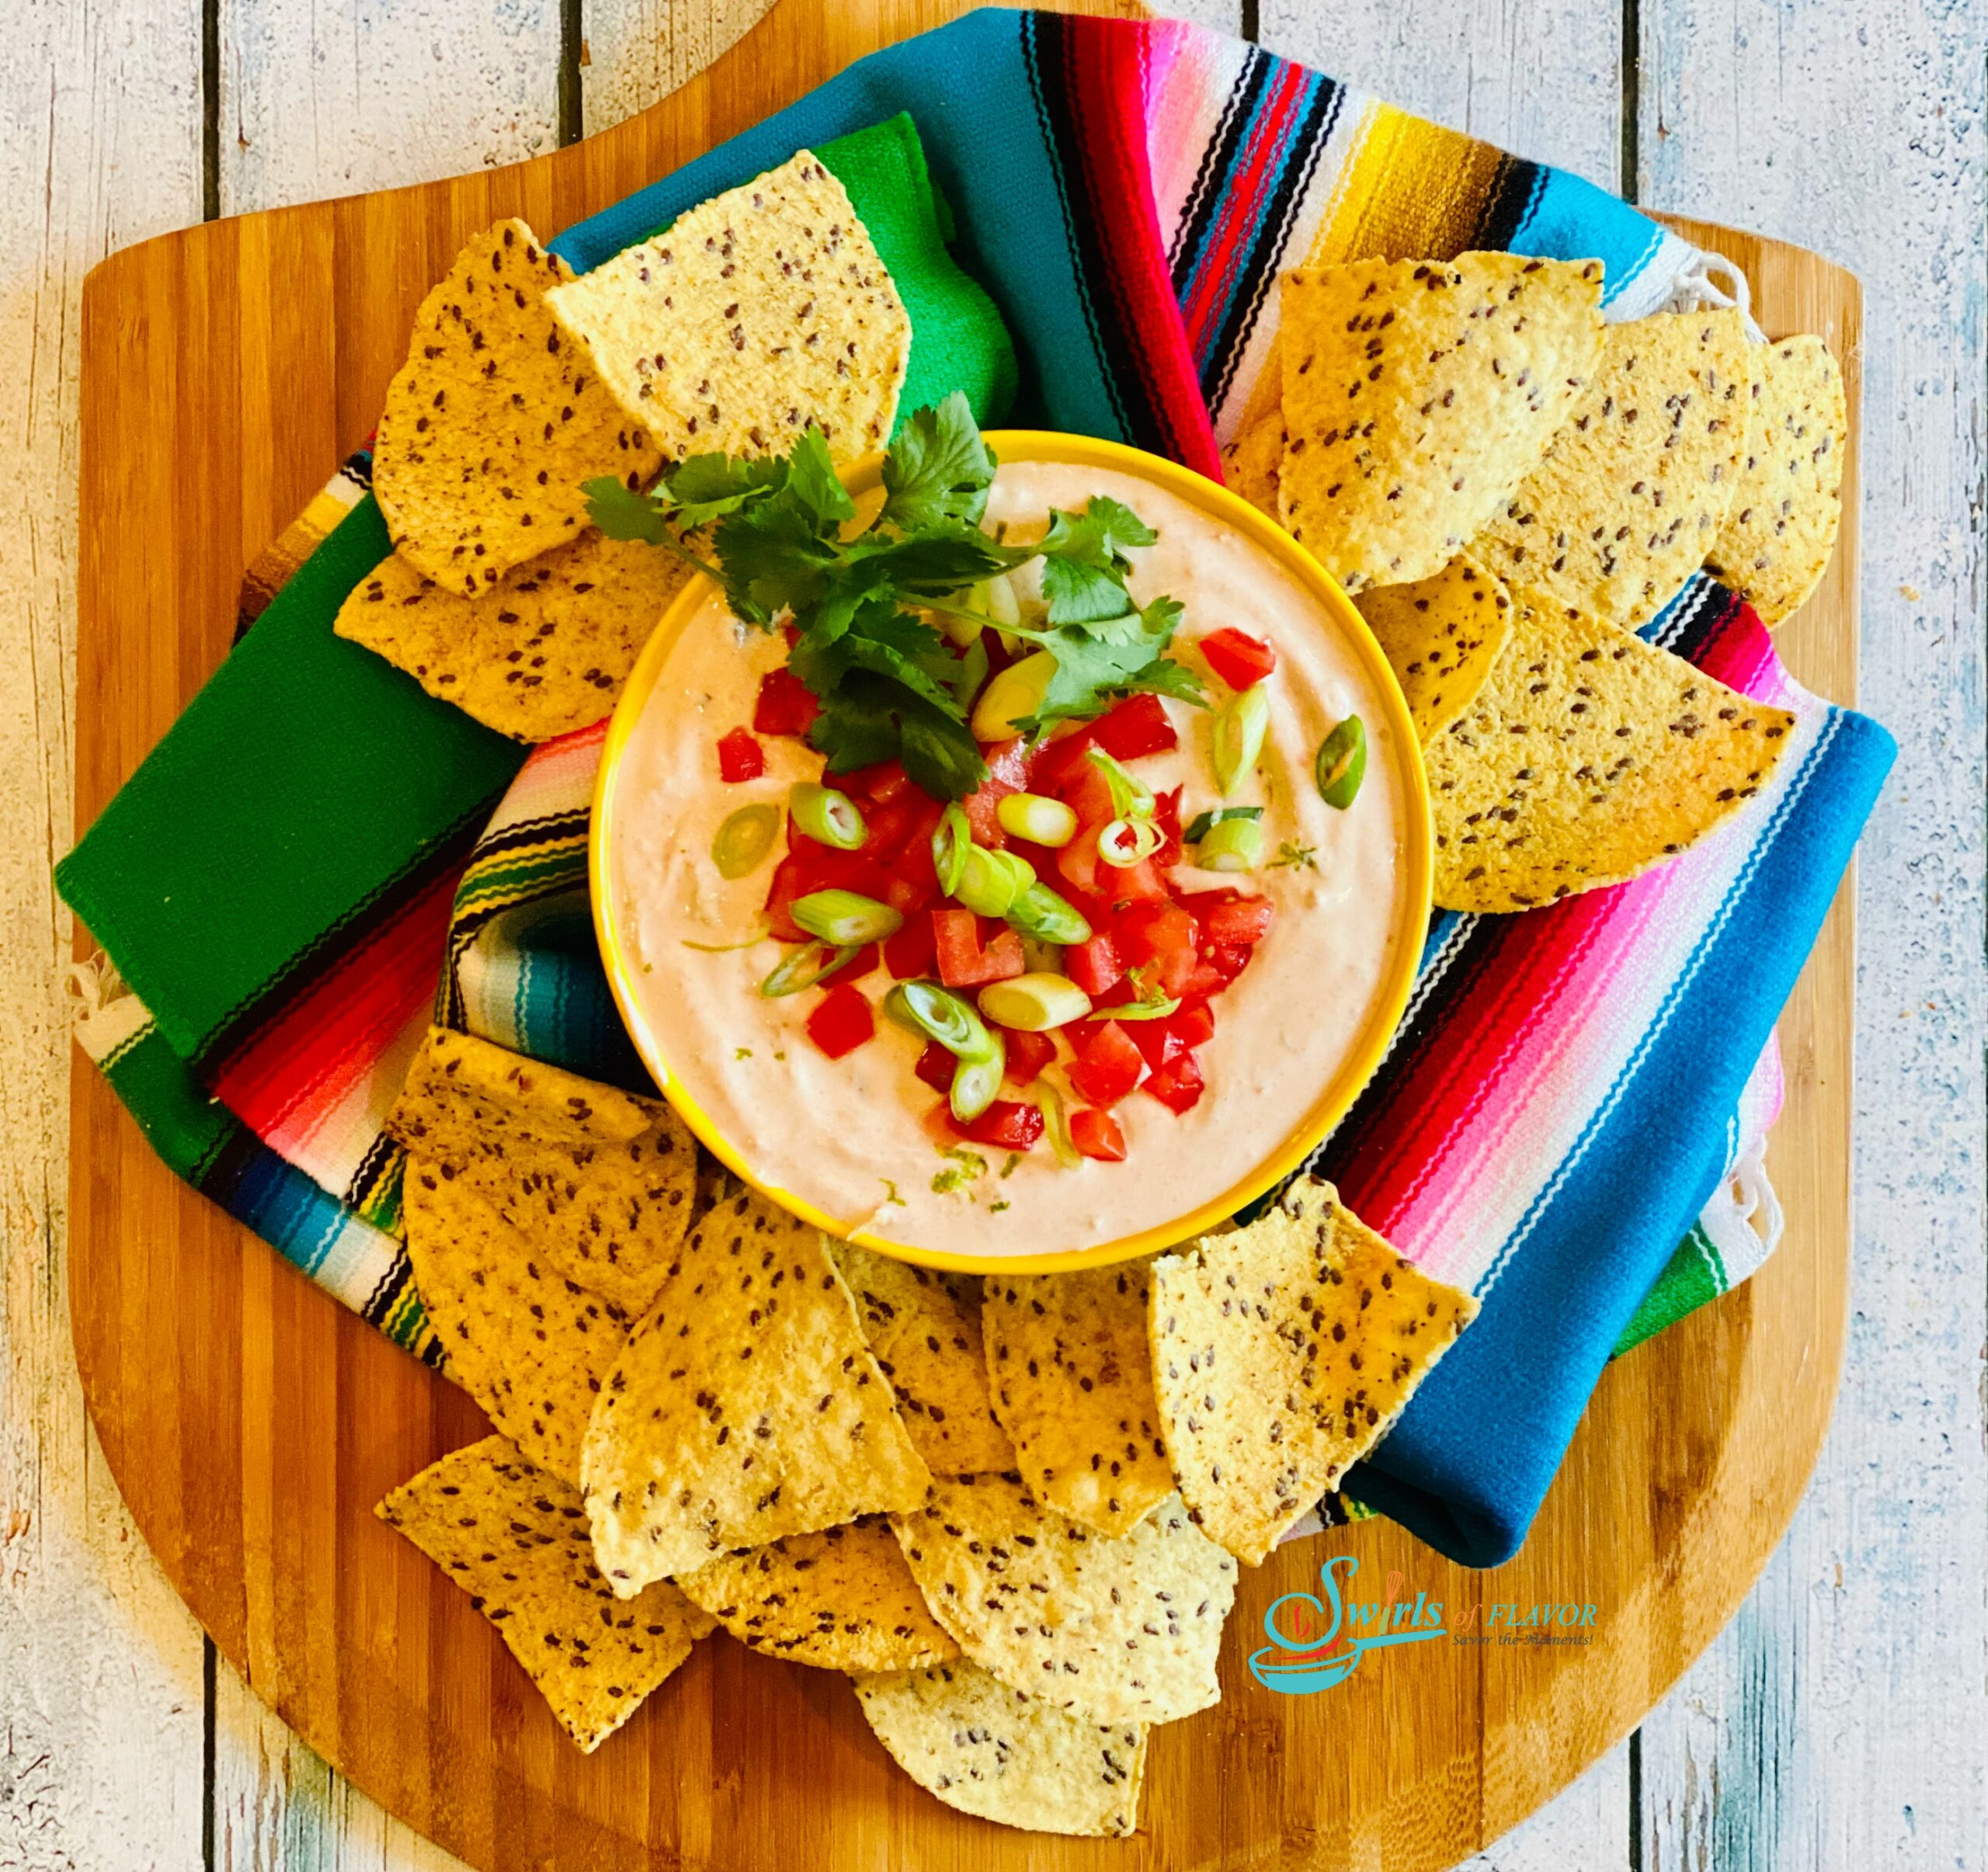 Salsa Dip on wooden board with chips